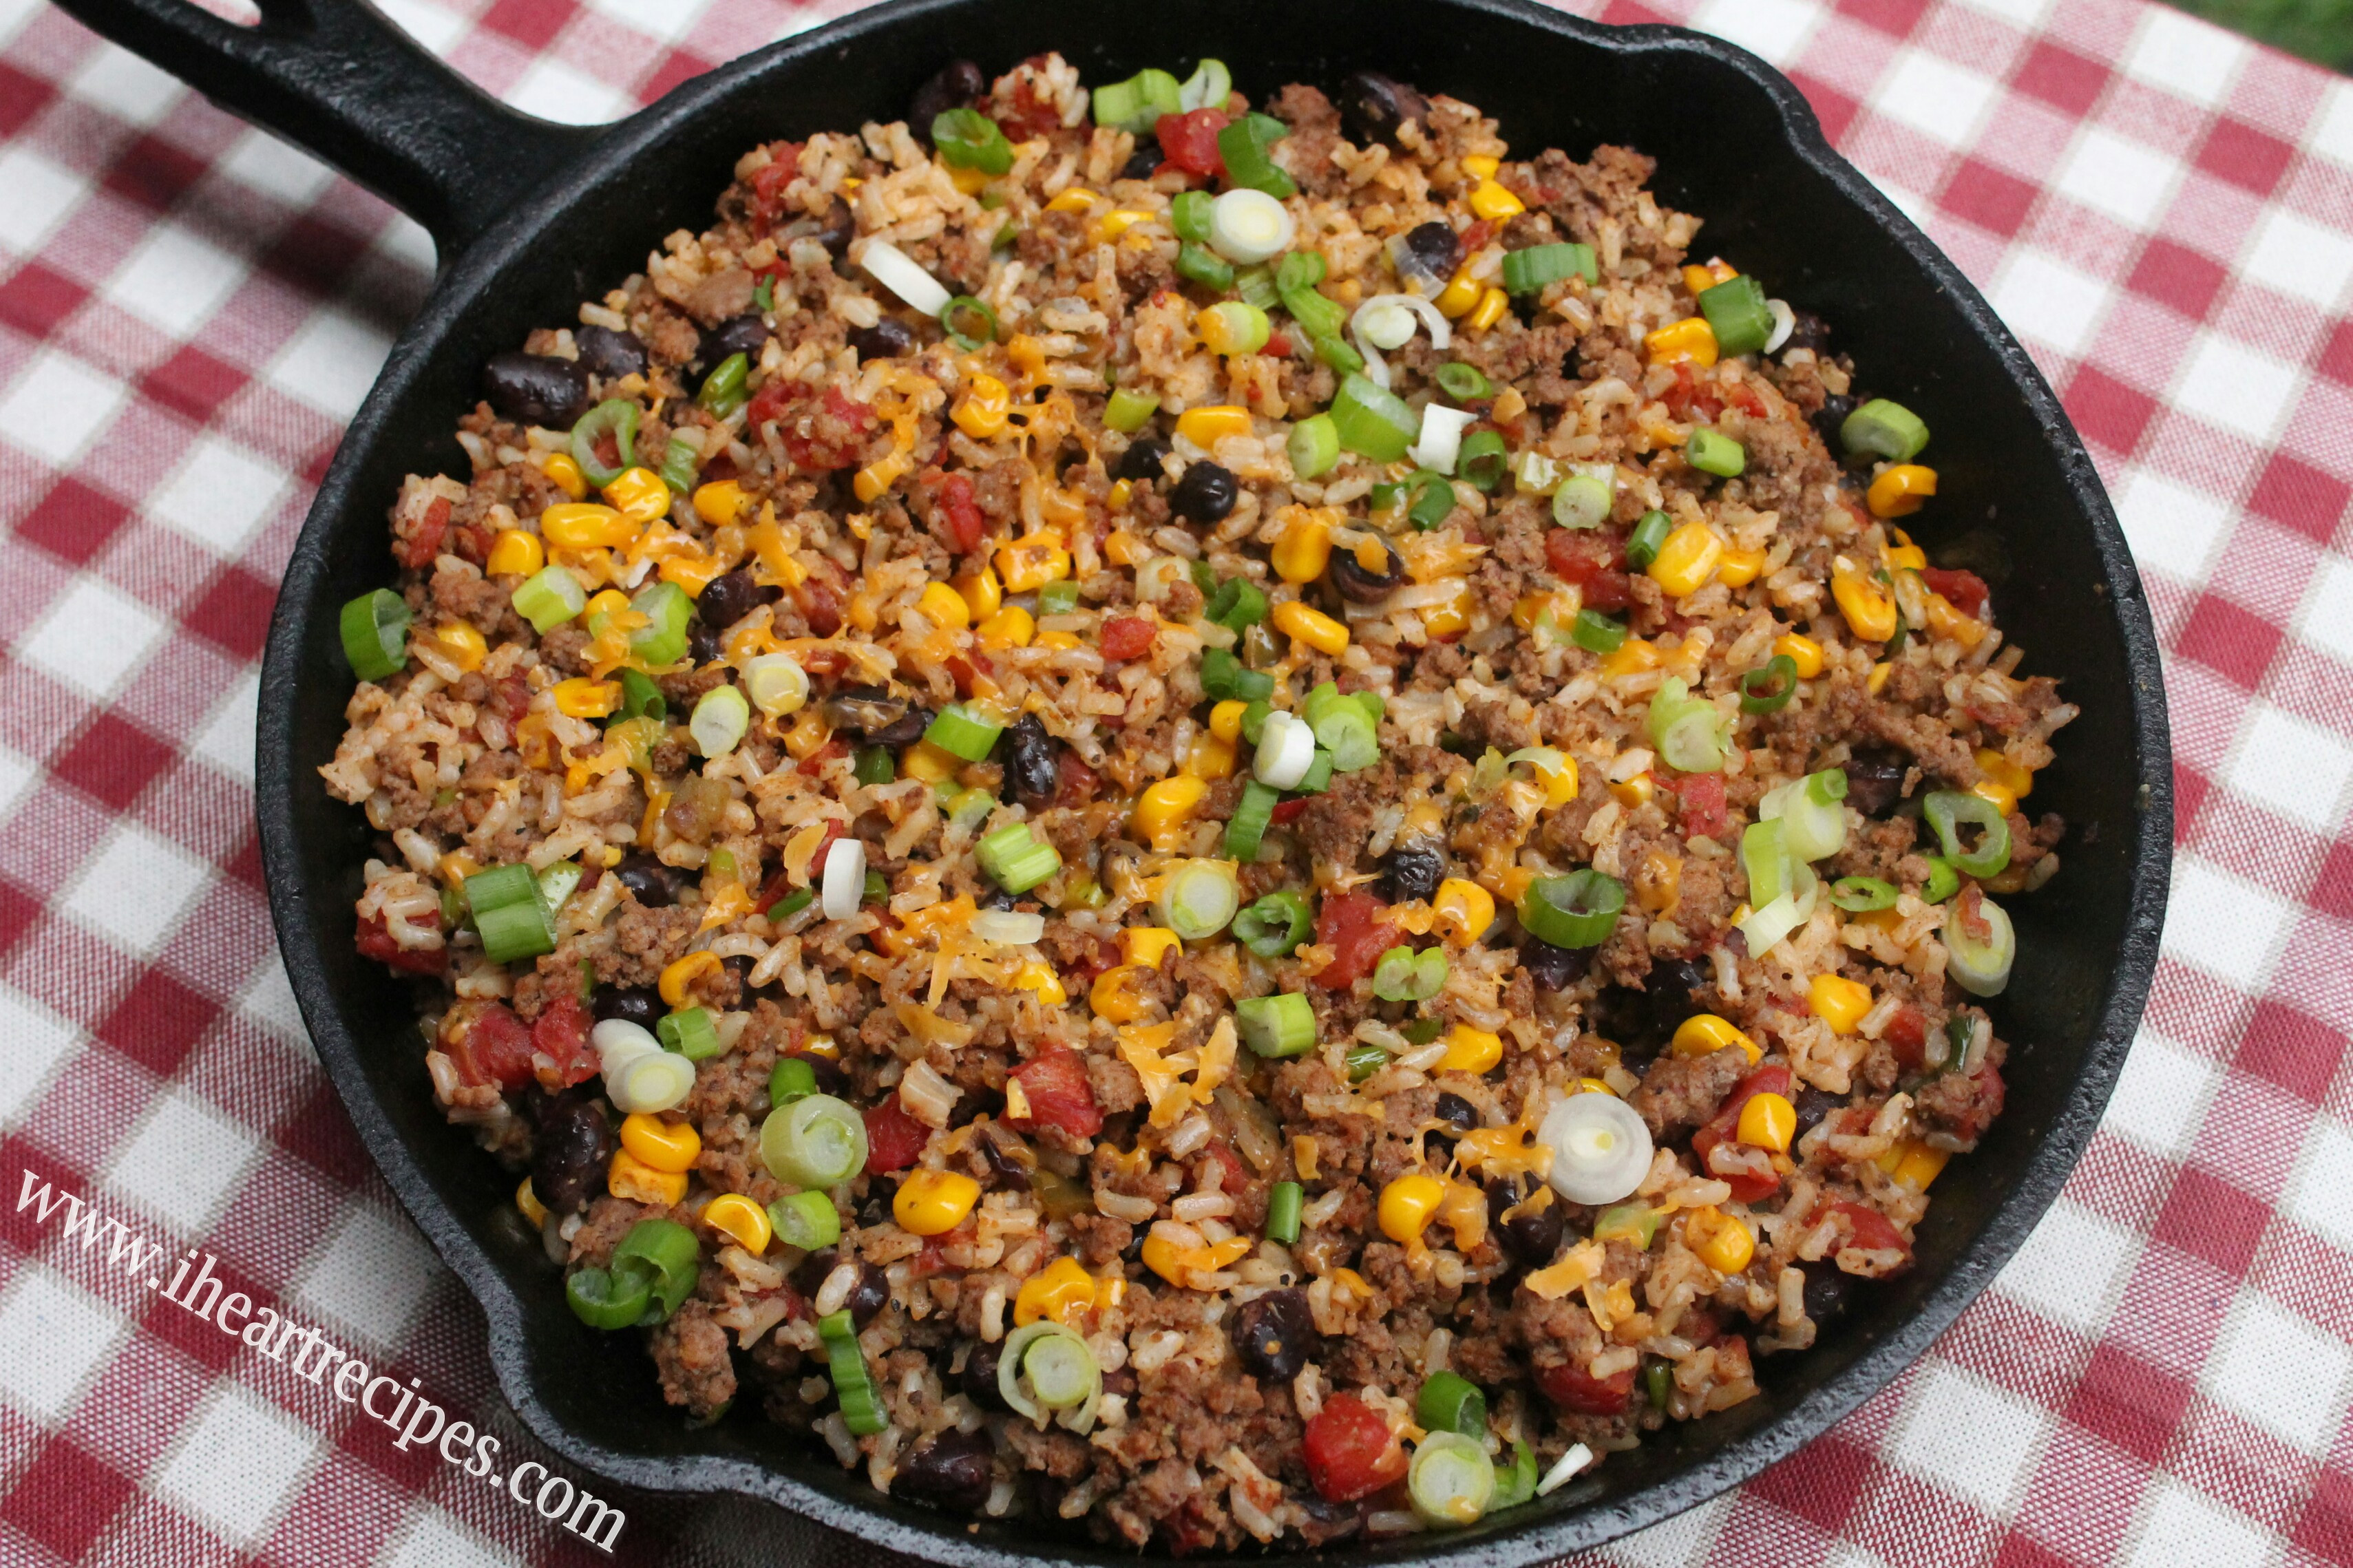 Simple Recipes With Ground Beef  Tex Mex Ground Beef Skillet I Heart Recipes